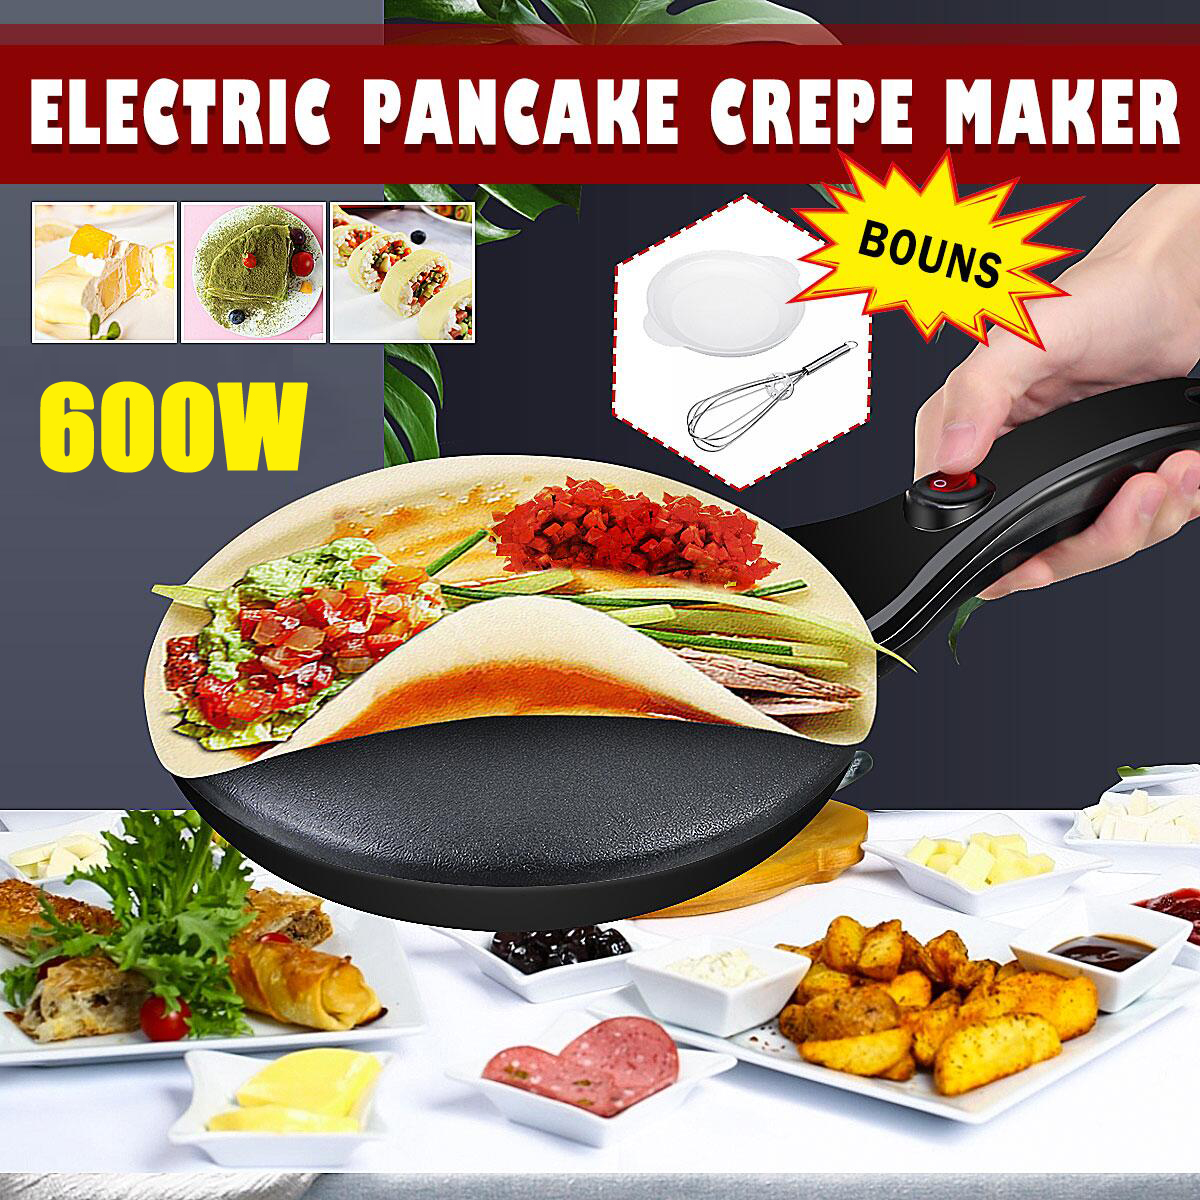 Portable Household Non-Stick Crepe Maker Pan Electric Pancake Cake 220V 600W Machine Frying Griddle Kitchen Baking Tools